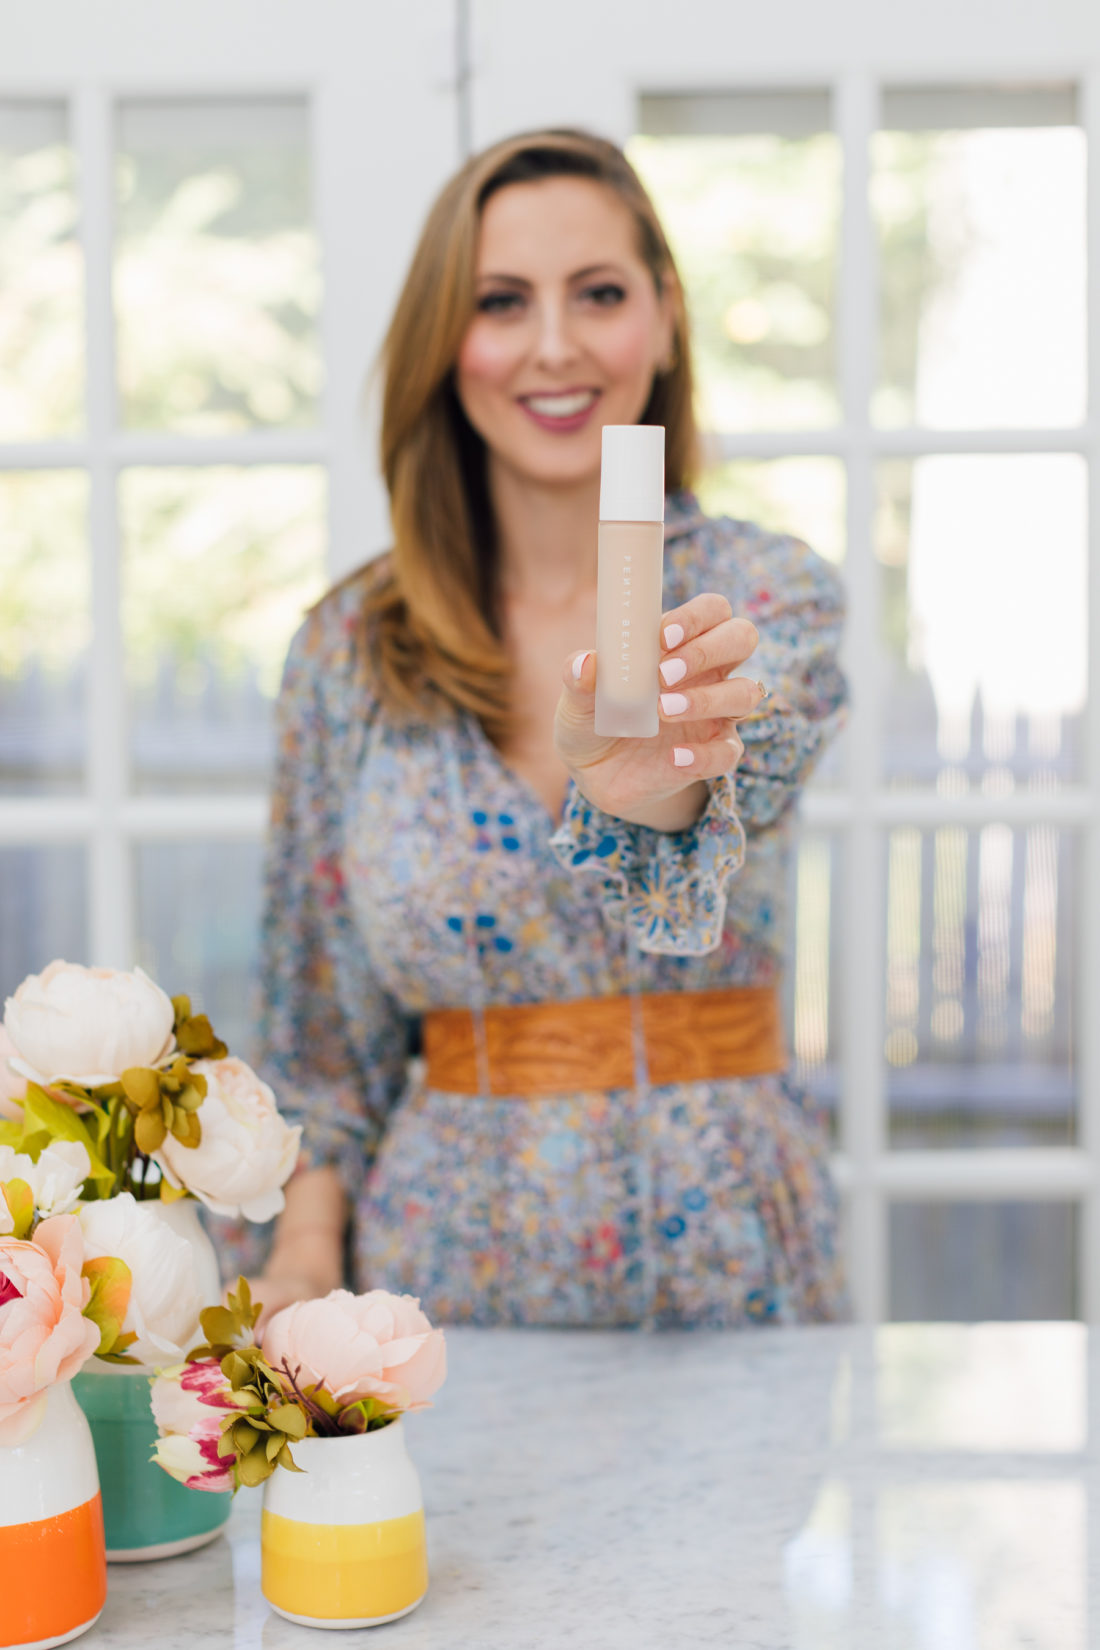 Eva Amurri Martino holds the Fenty Pro Filt'r Foundation as part of her Eva's Obsessions October 2019